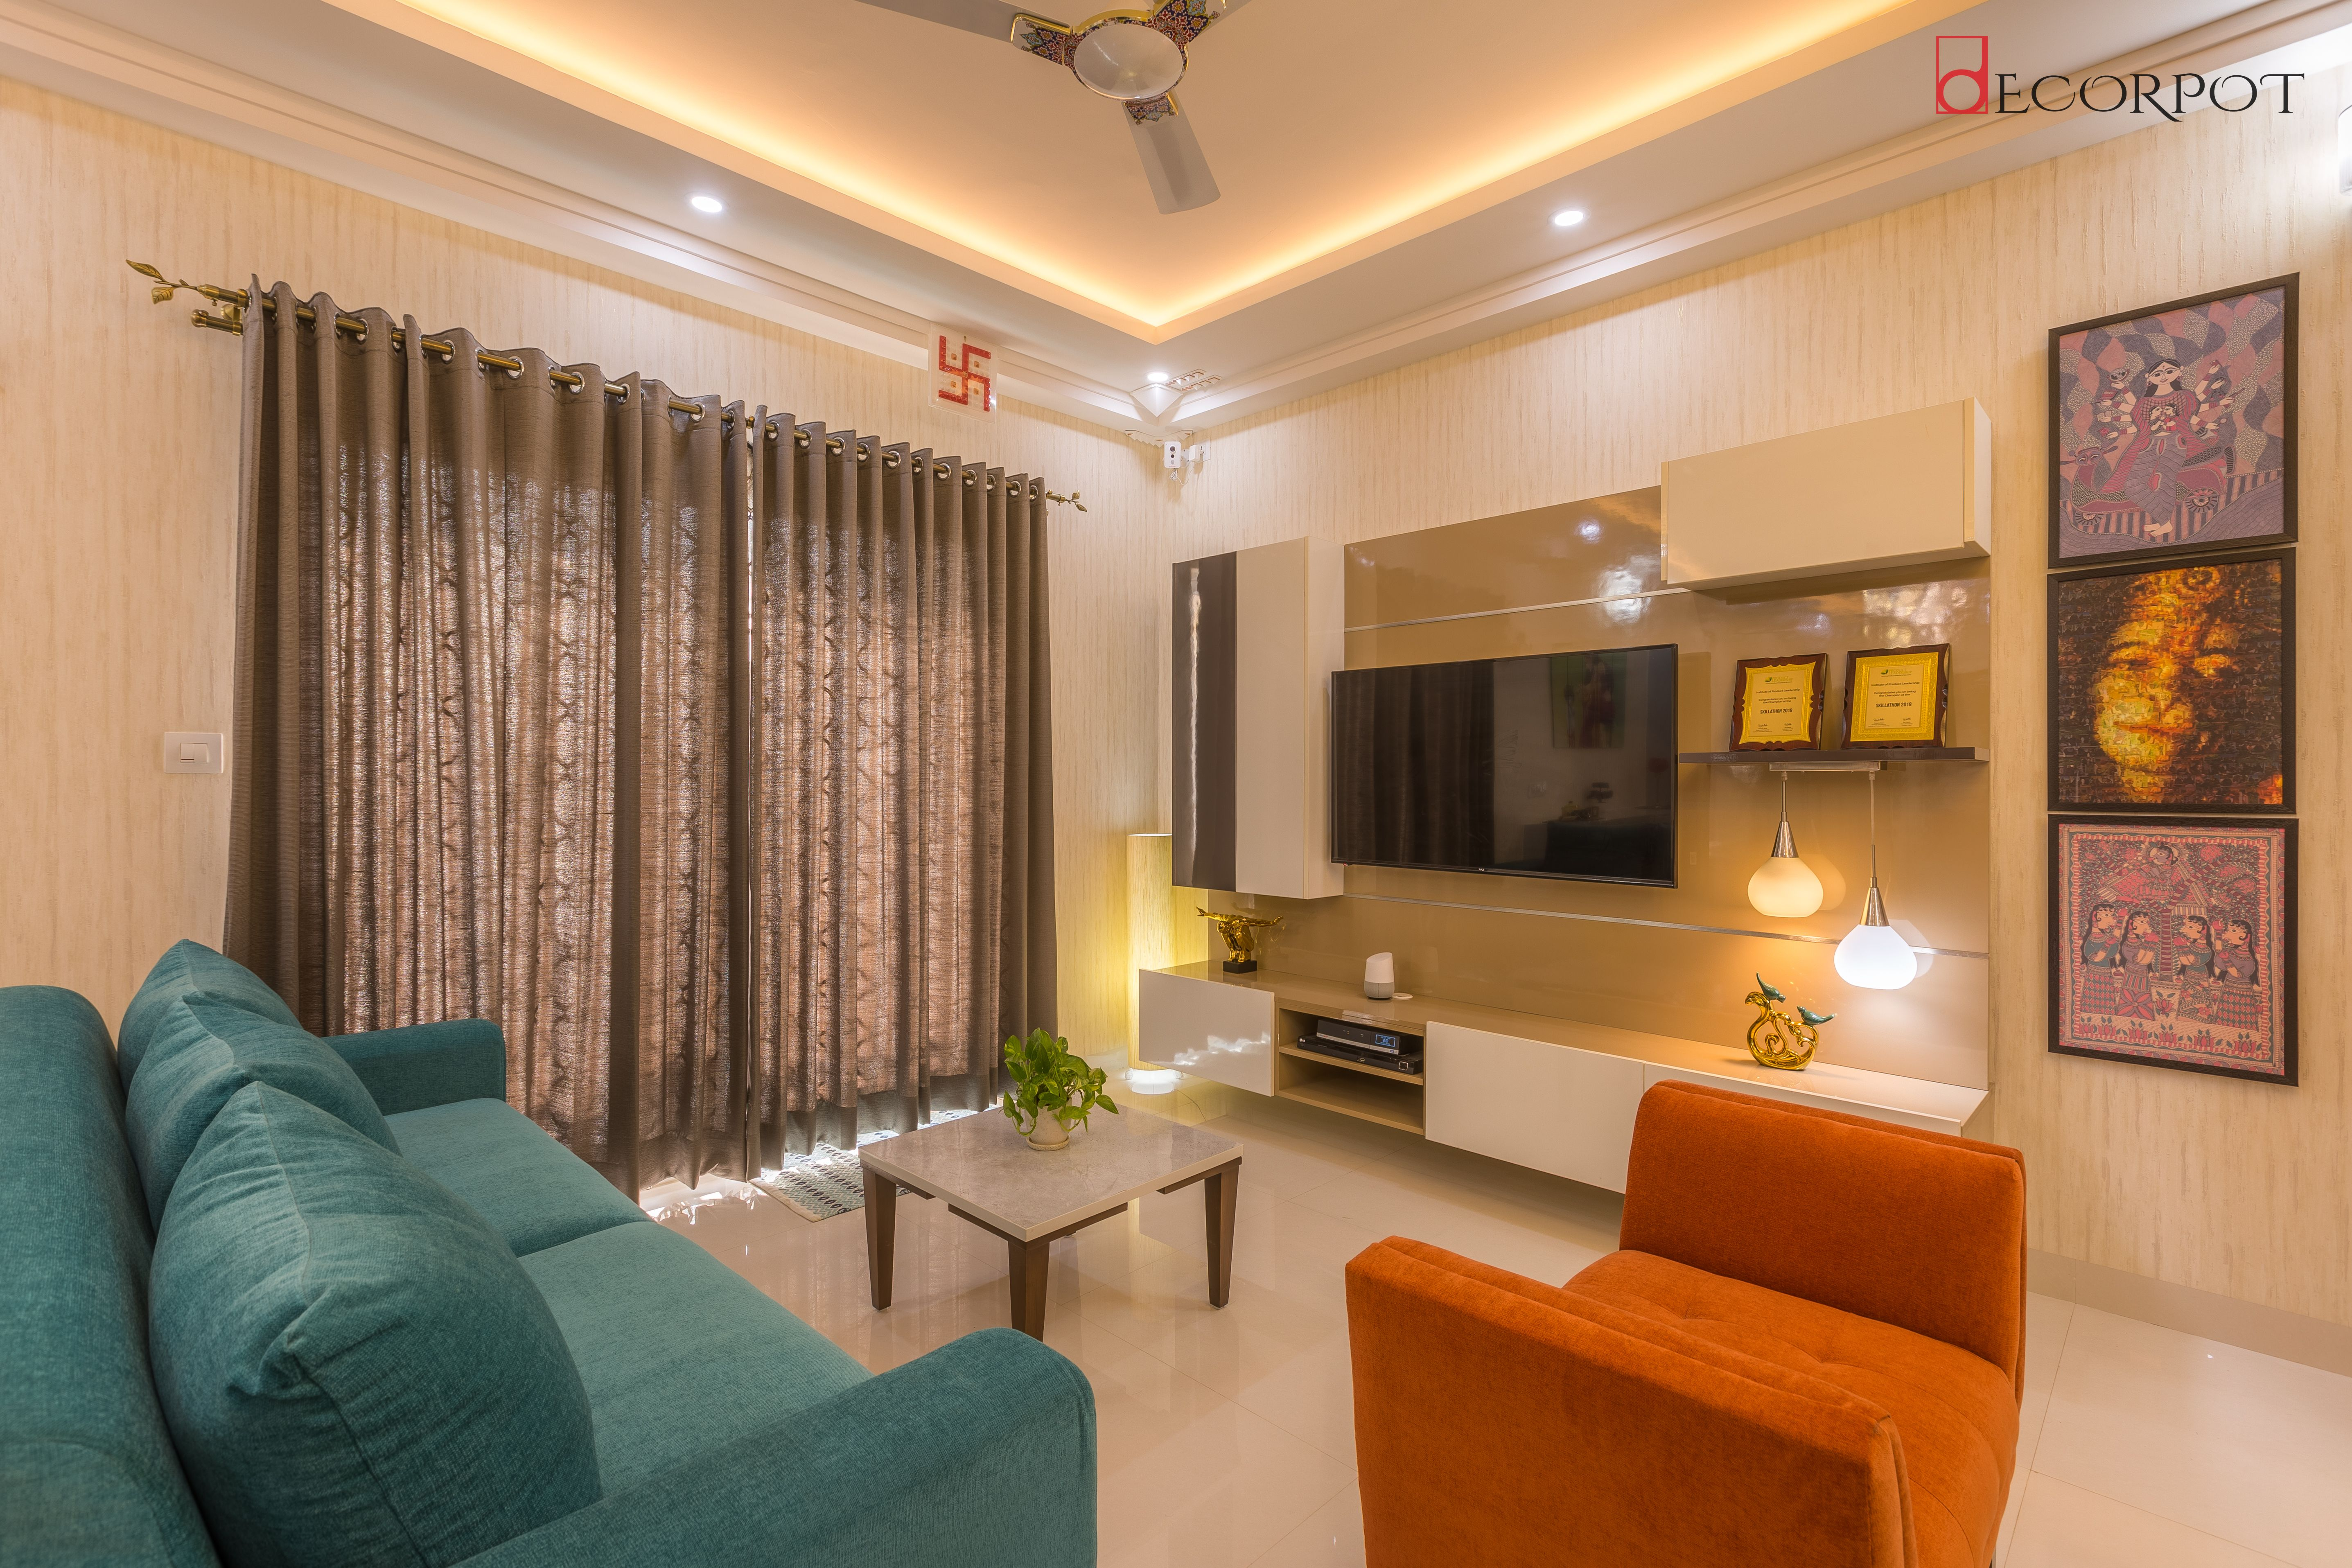 From the foyer sitting of this Decorhome, you mark your way to its entertainment area. A well lit space with vibrant colored furniture to keep up the liveliness!!